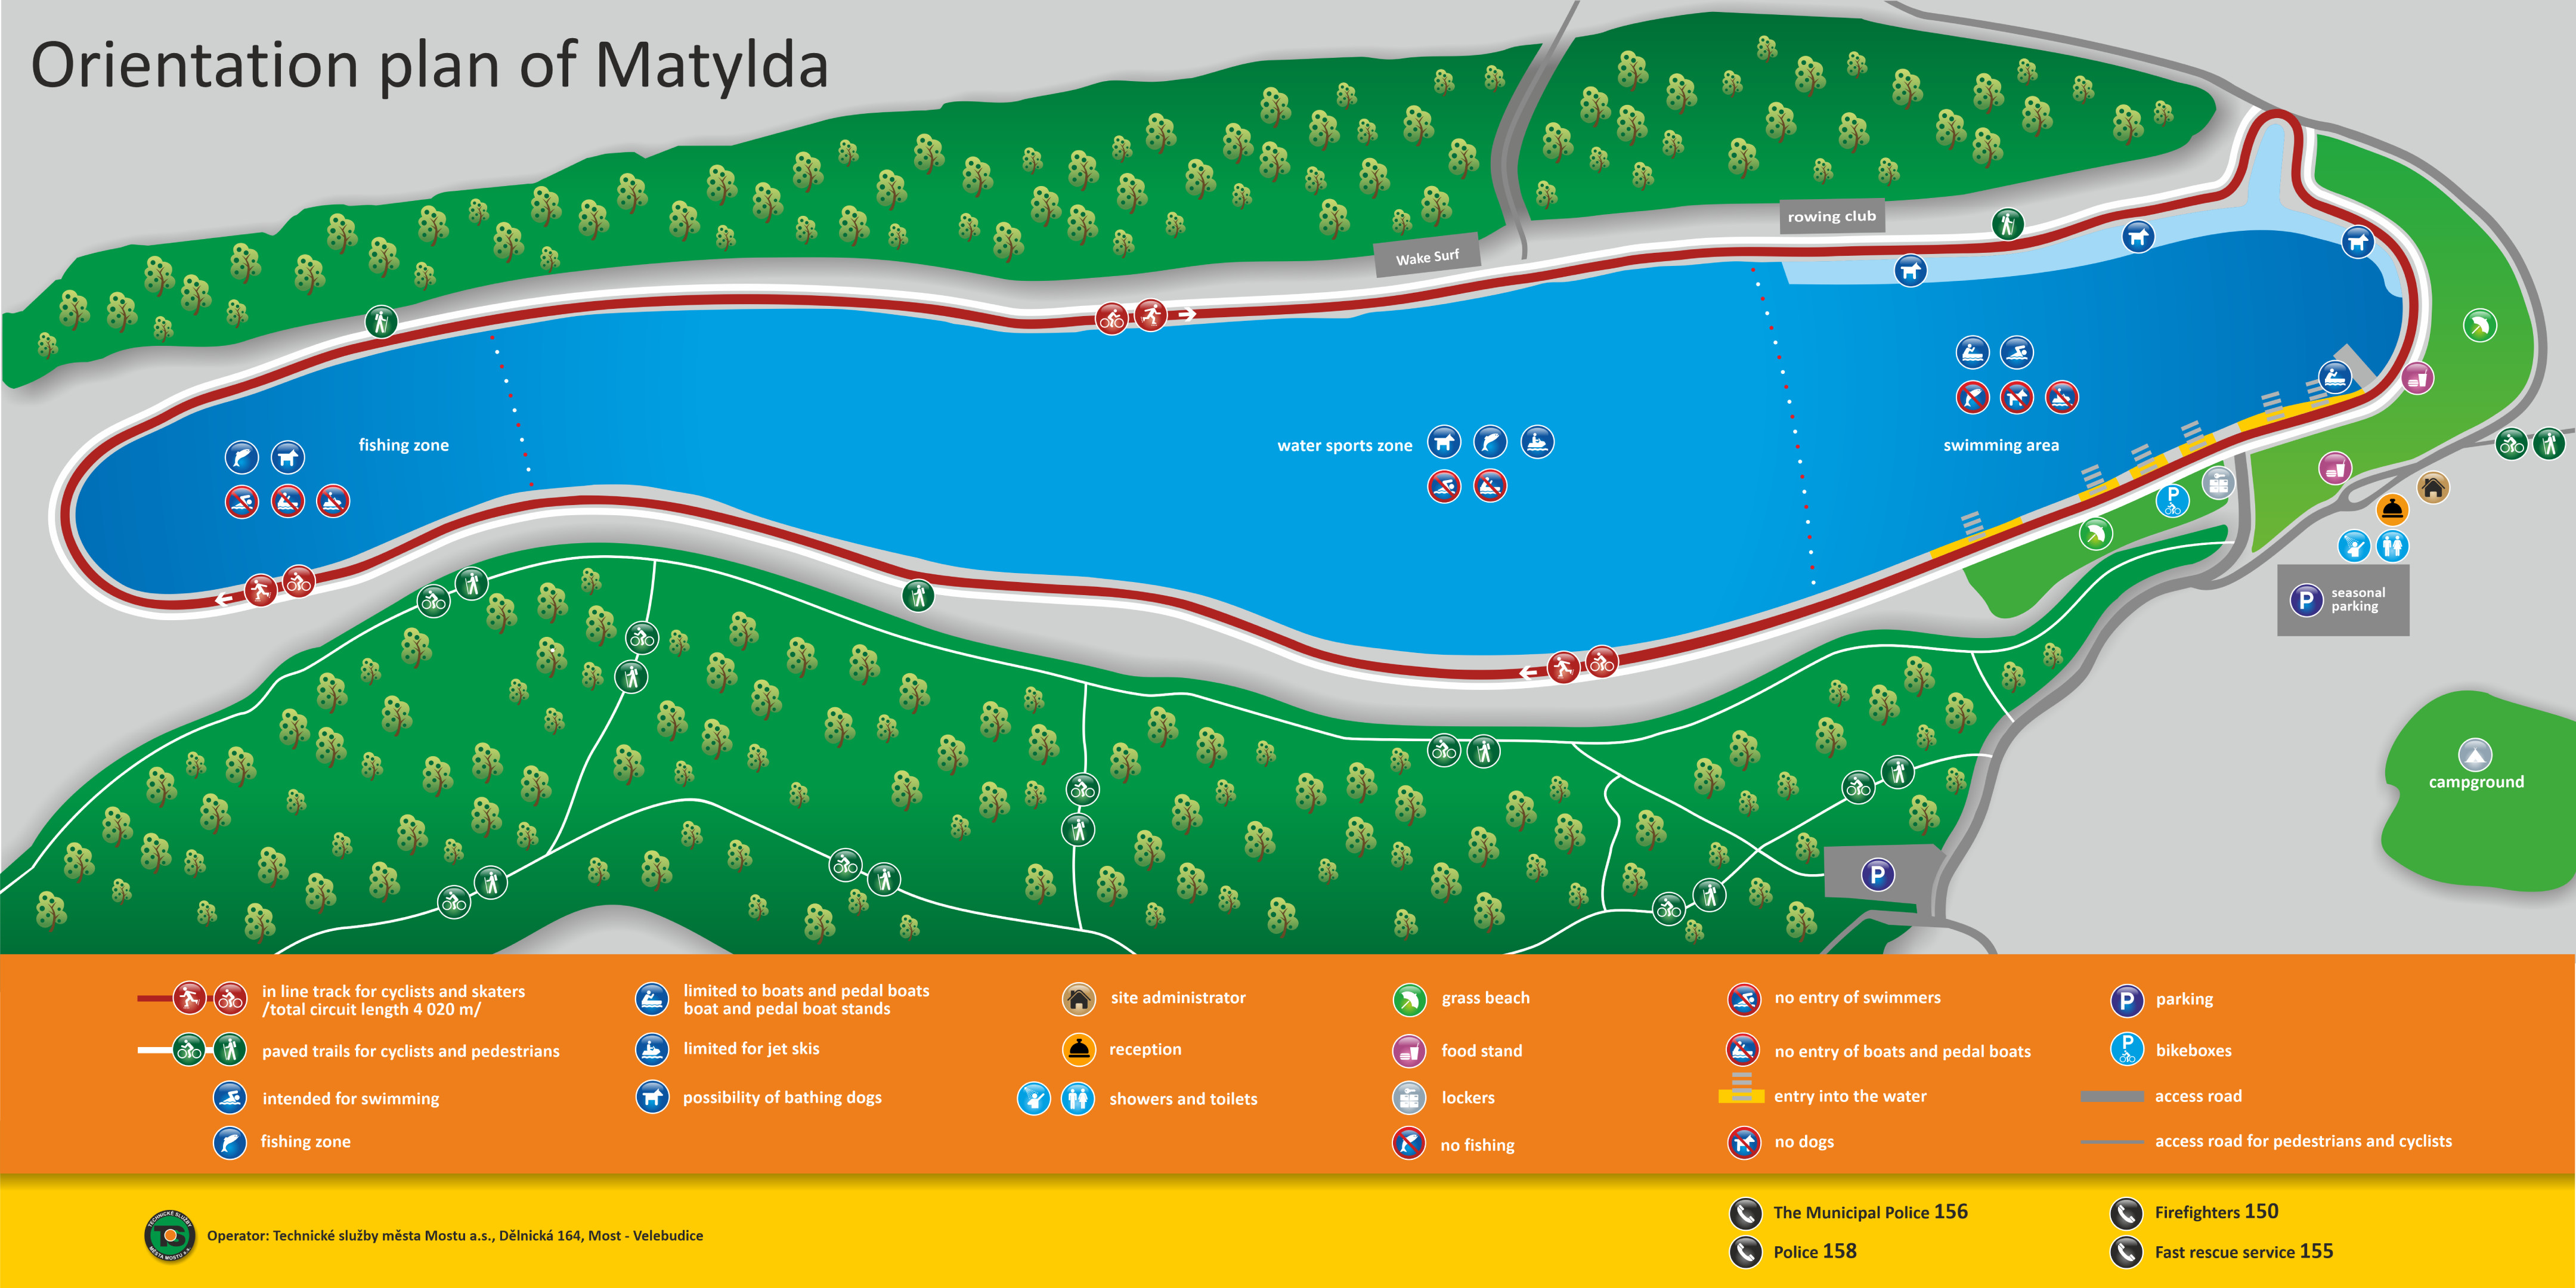 Map of the Matylda area